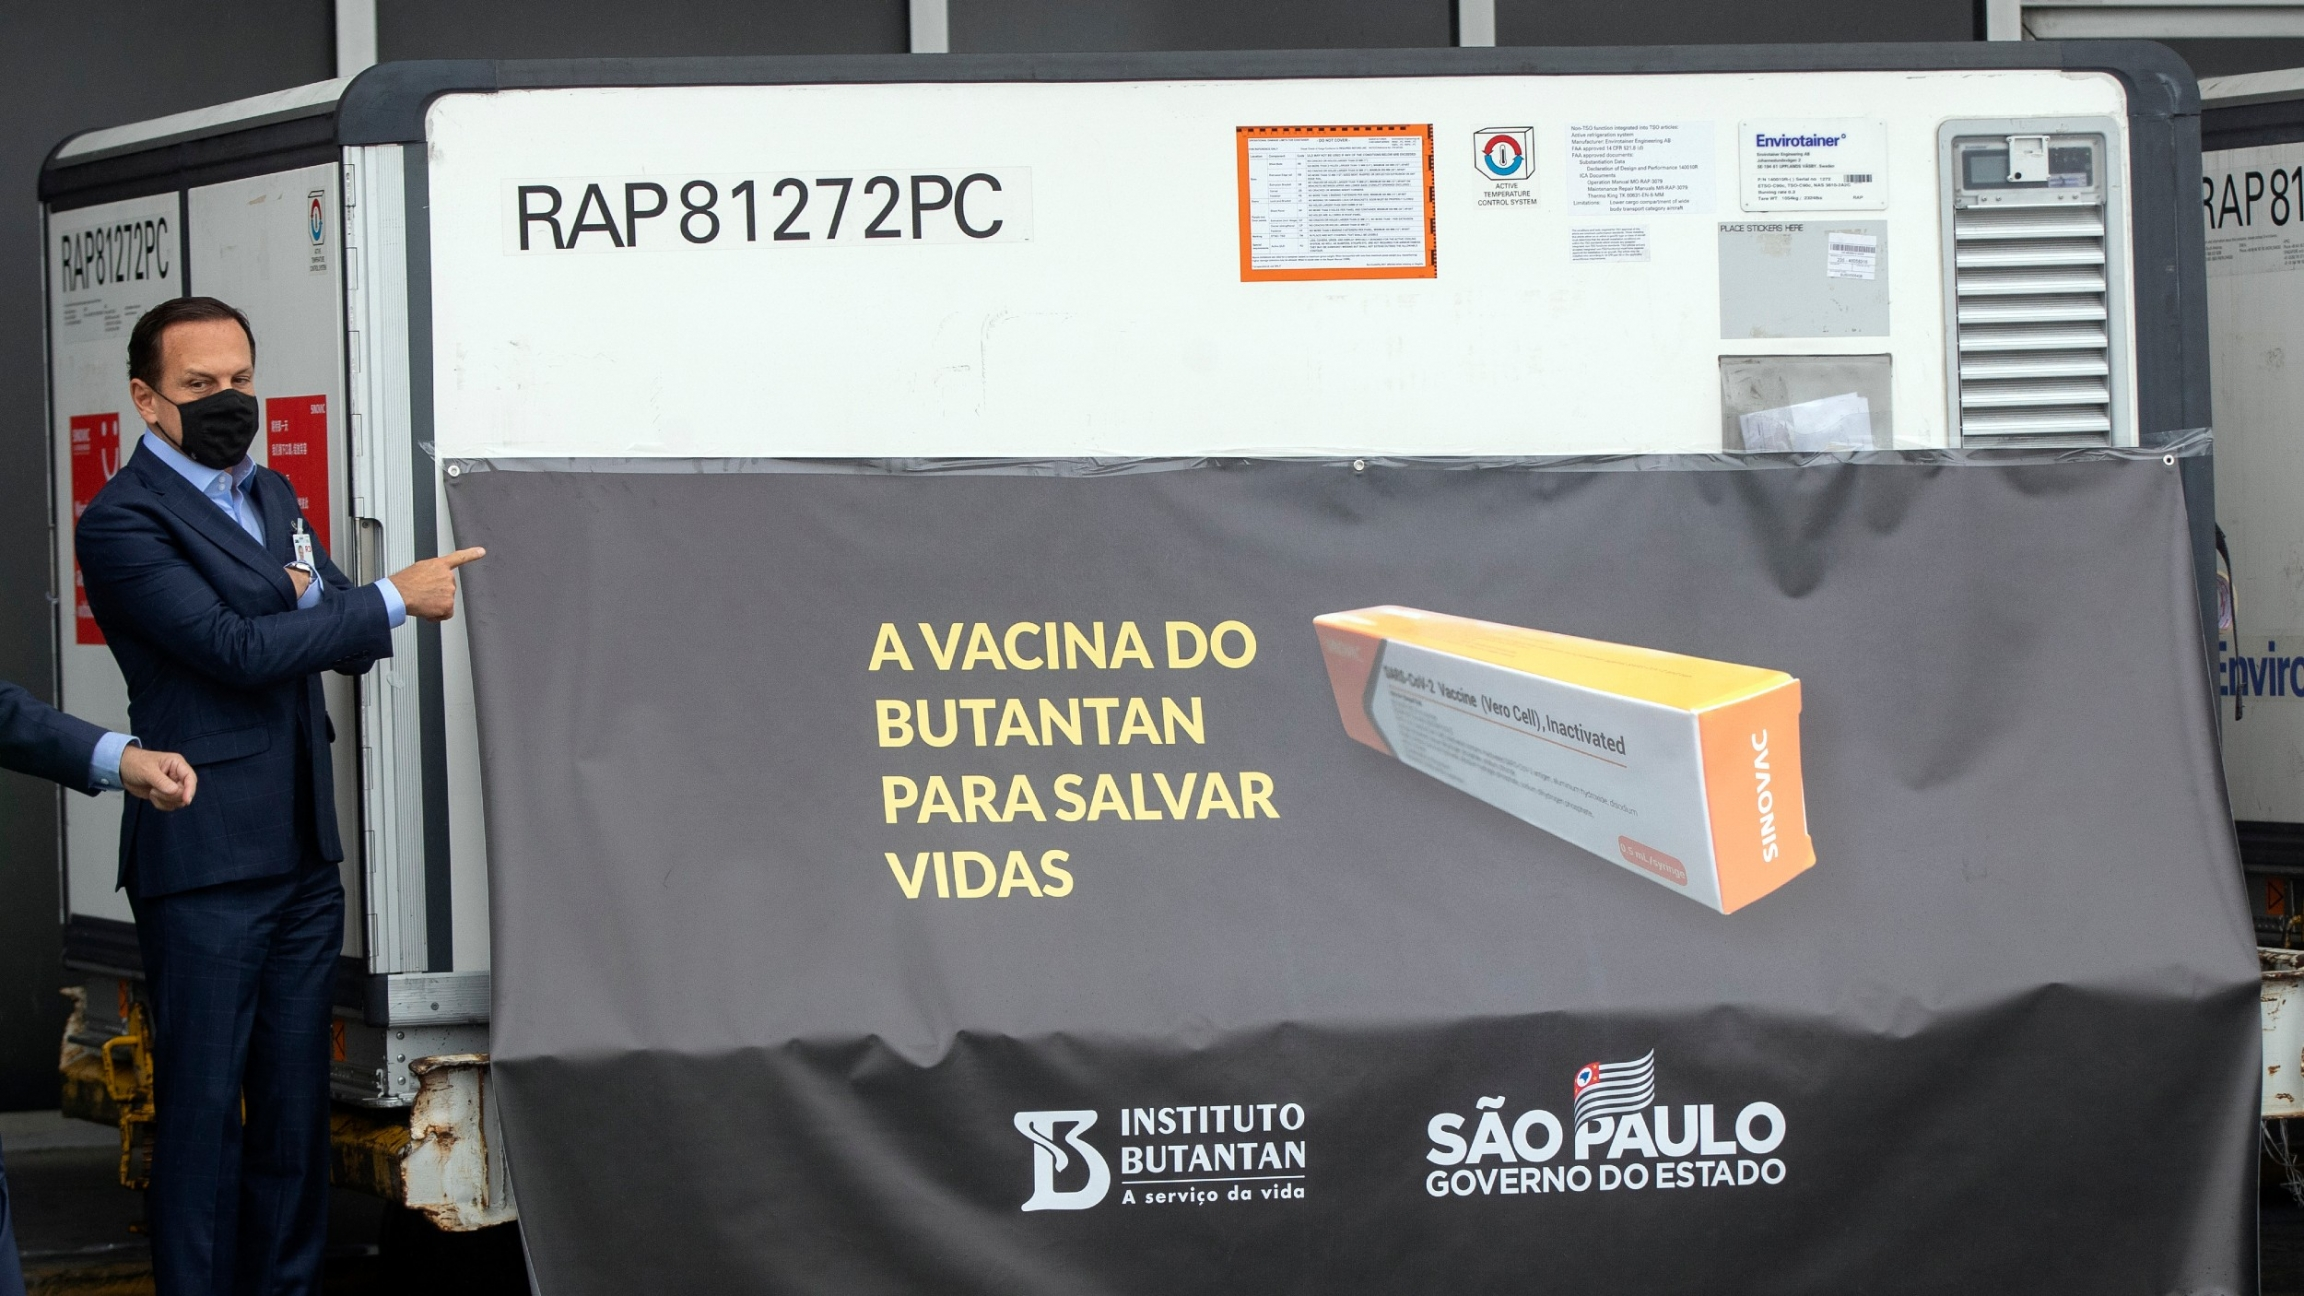 São Paulo Governor João Doria points to a container carrying the experimental COVID-19 vaccine CoronaVac during a photo opportunity, after it was unloaded from a cargo plane that arrived from China at Guarulhos International Airport near São Paulo, Brazil